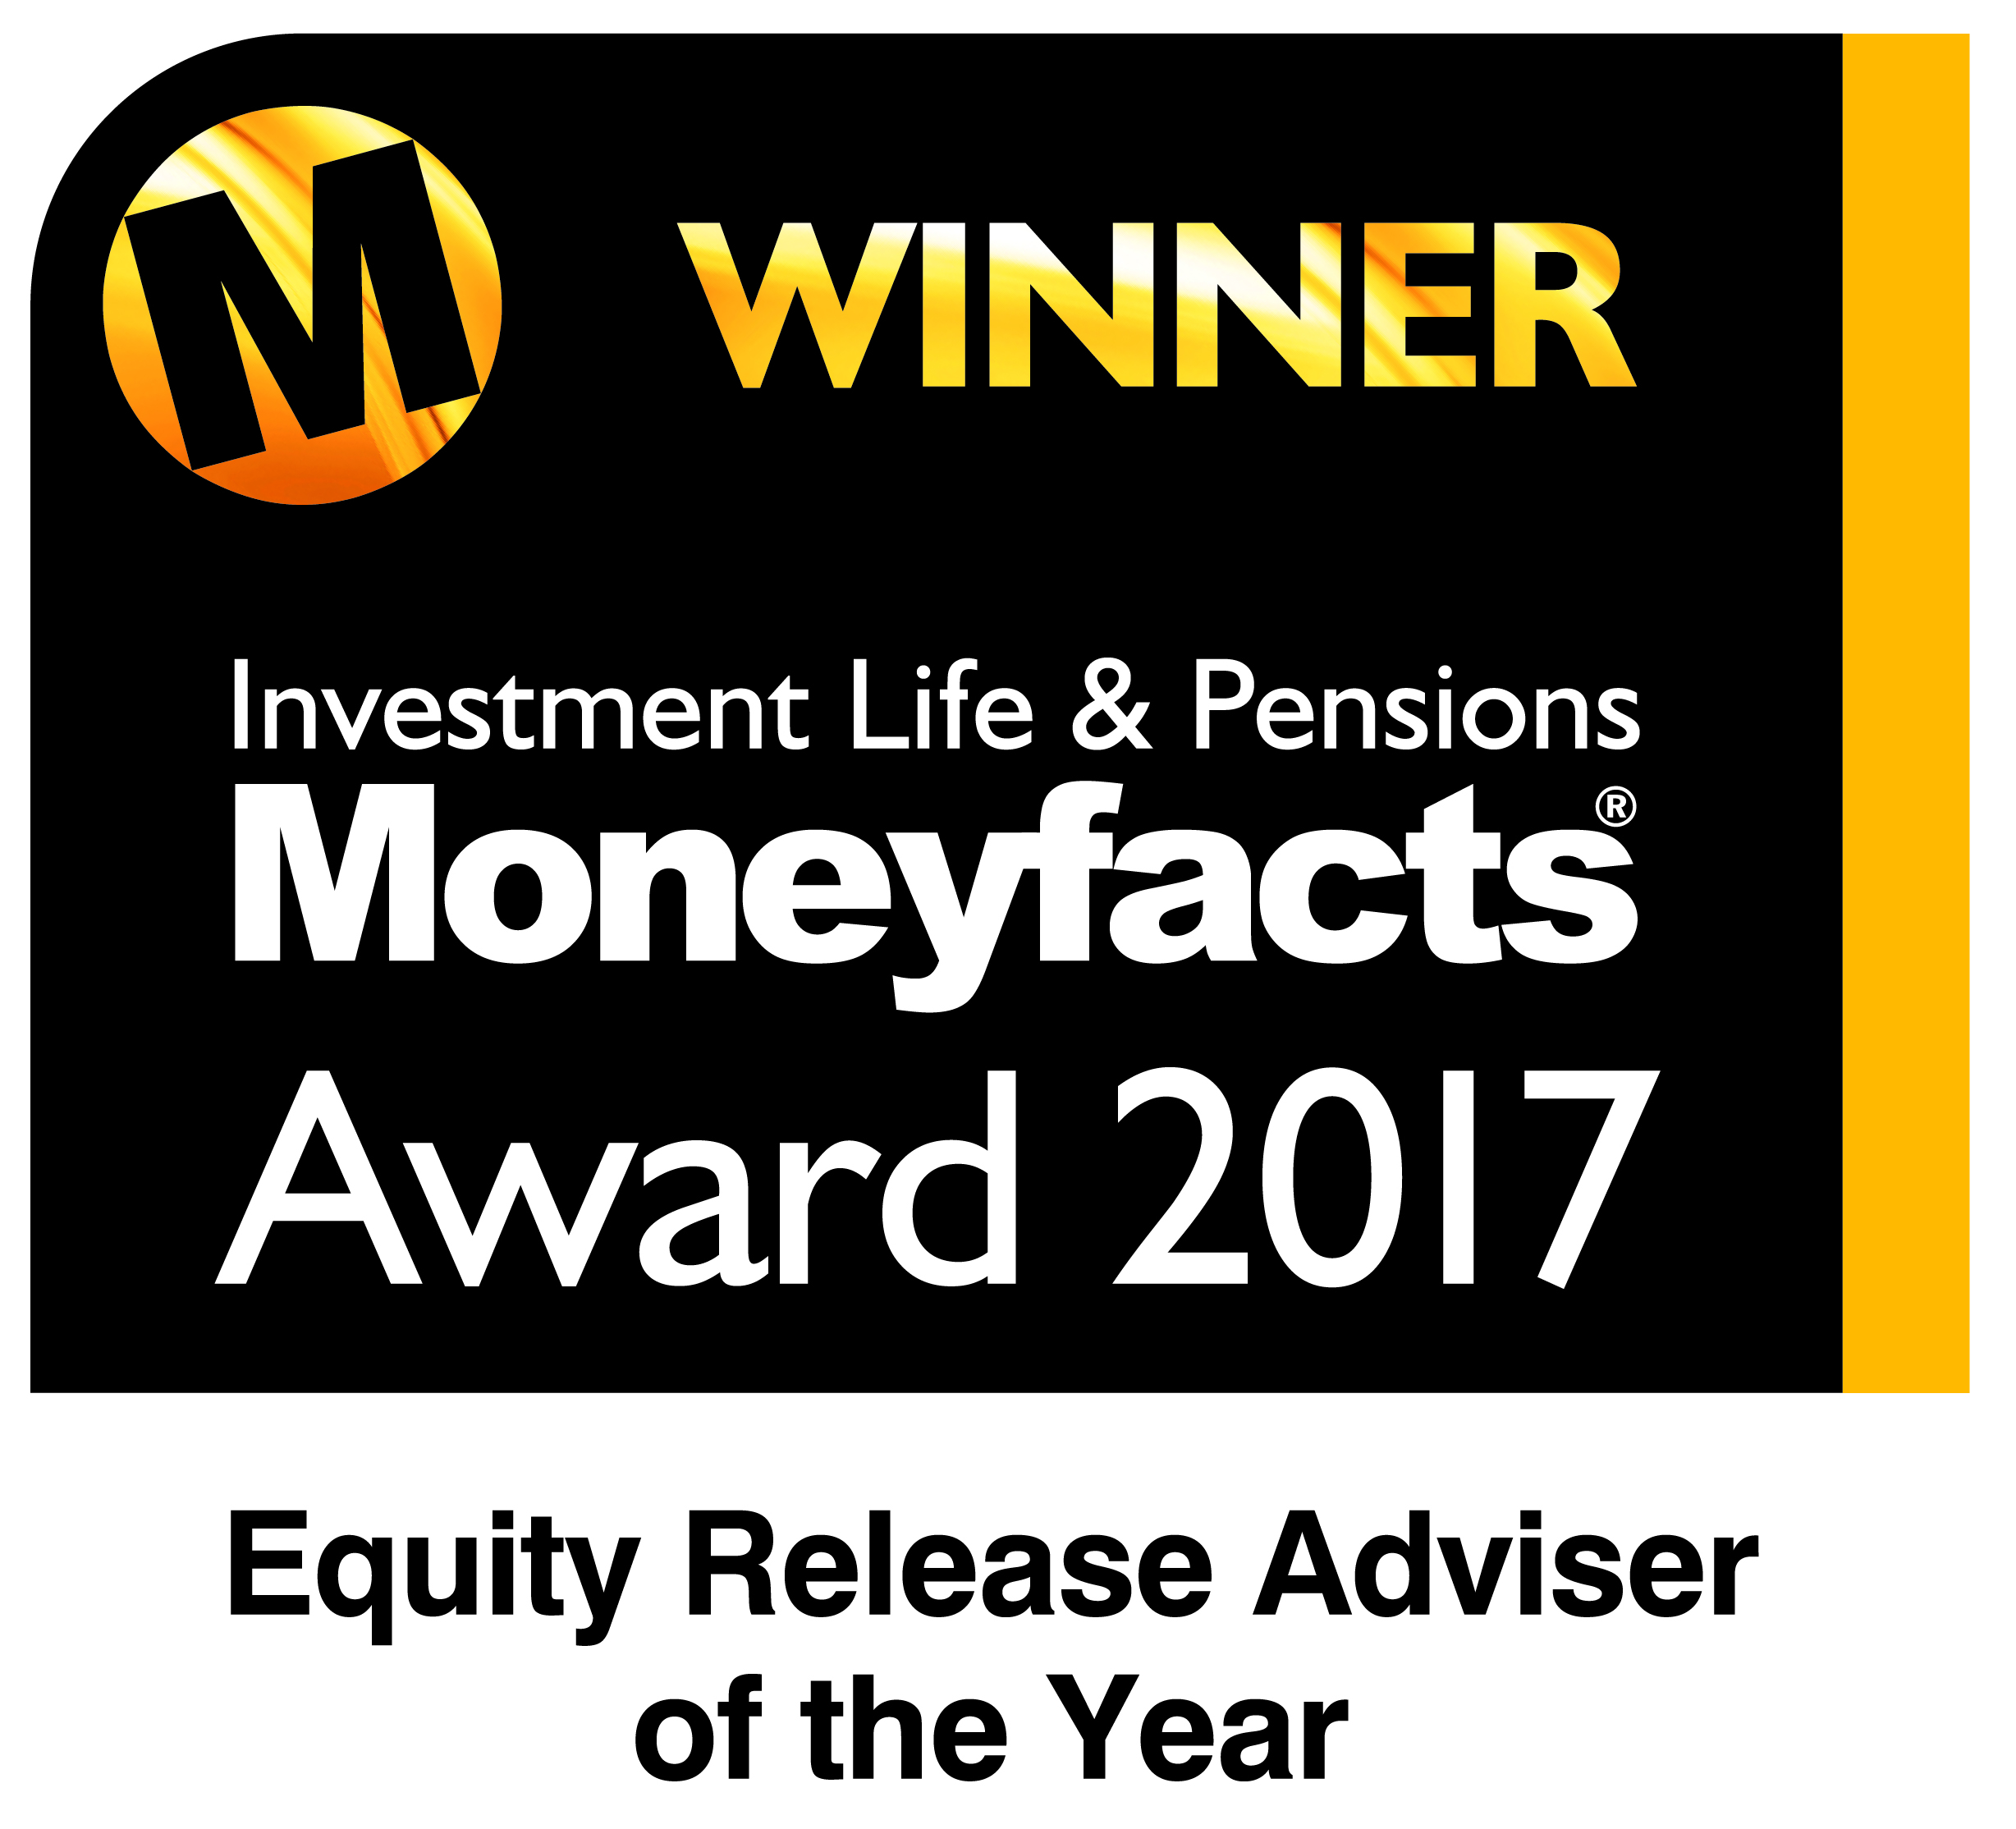 Moneyfacts awards 2017 - winner